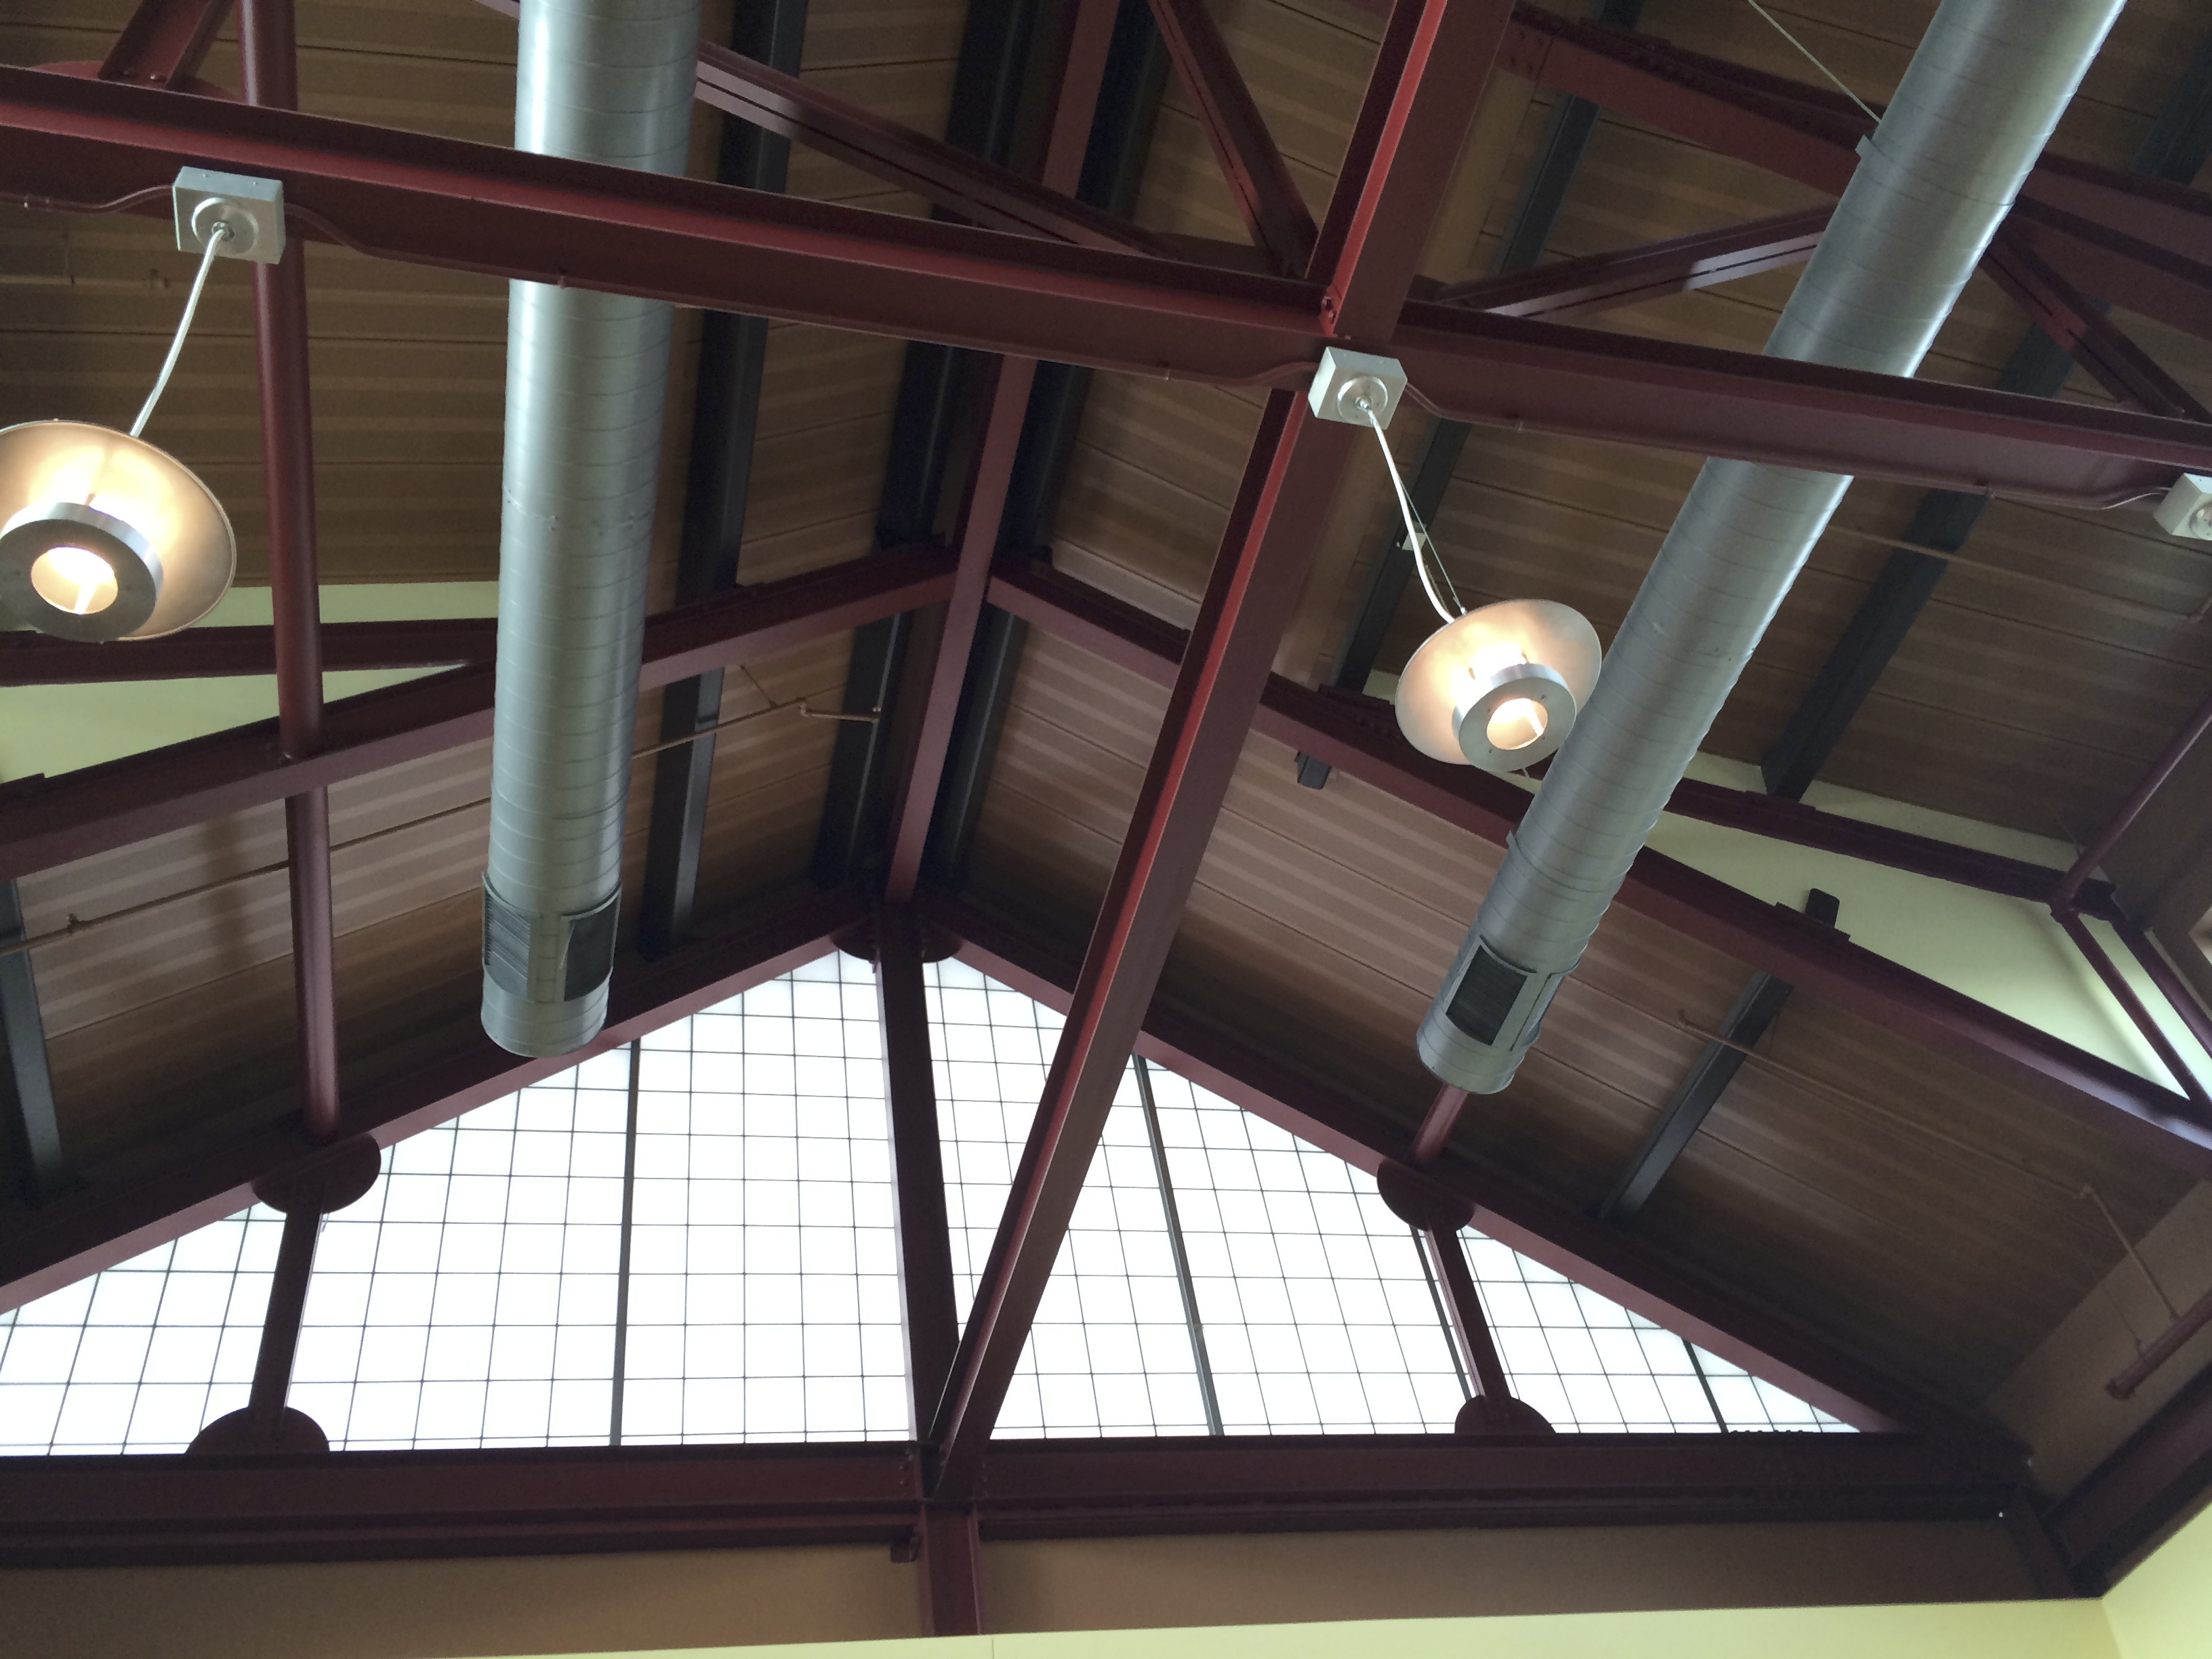 Garage Attic Air Conditioner Why High Ceilings Make Cold Rooms Energy Smart Home Performance